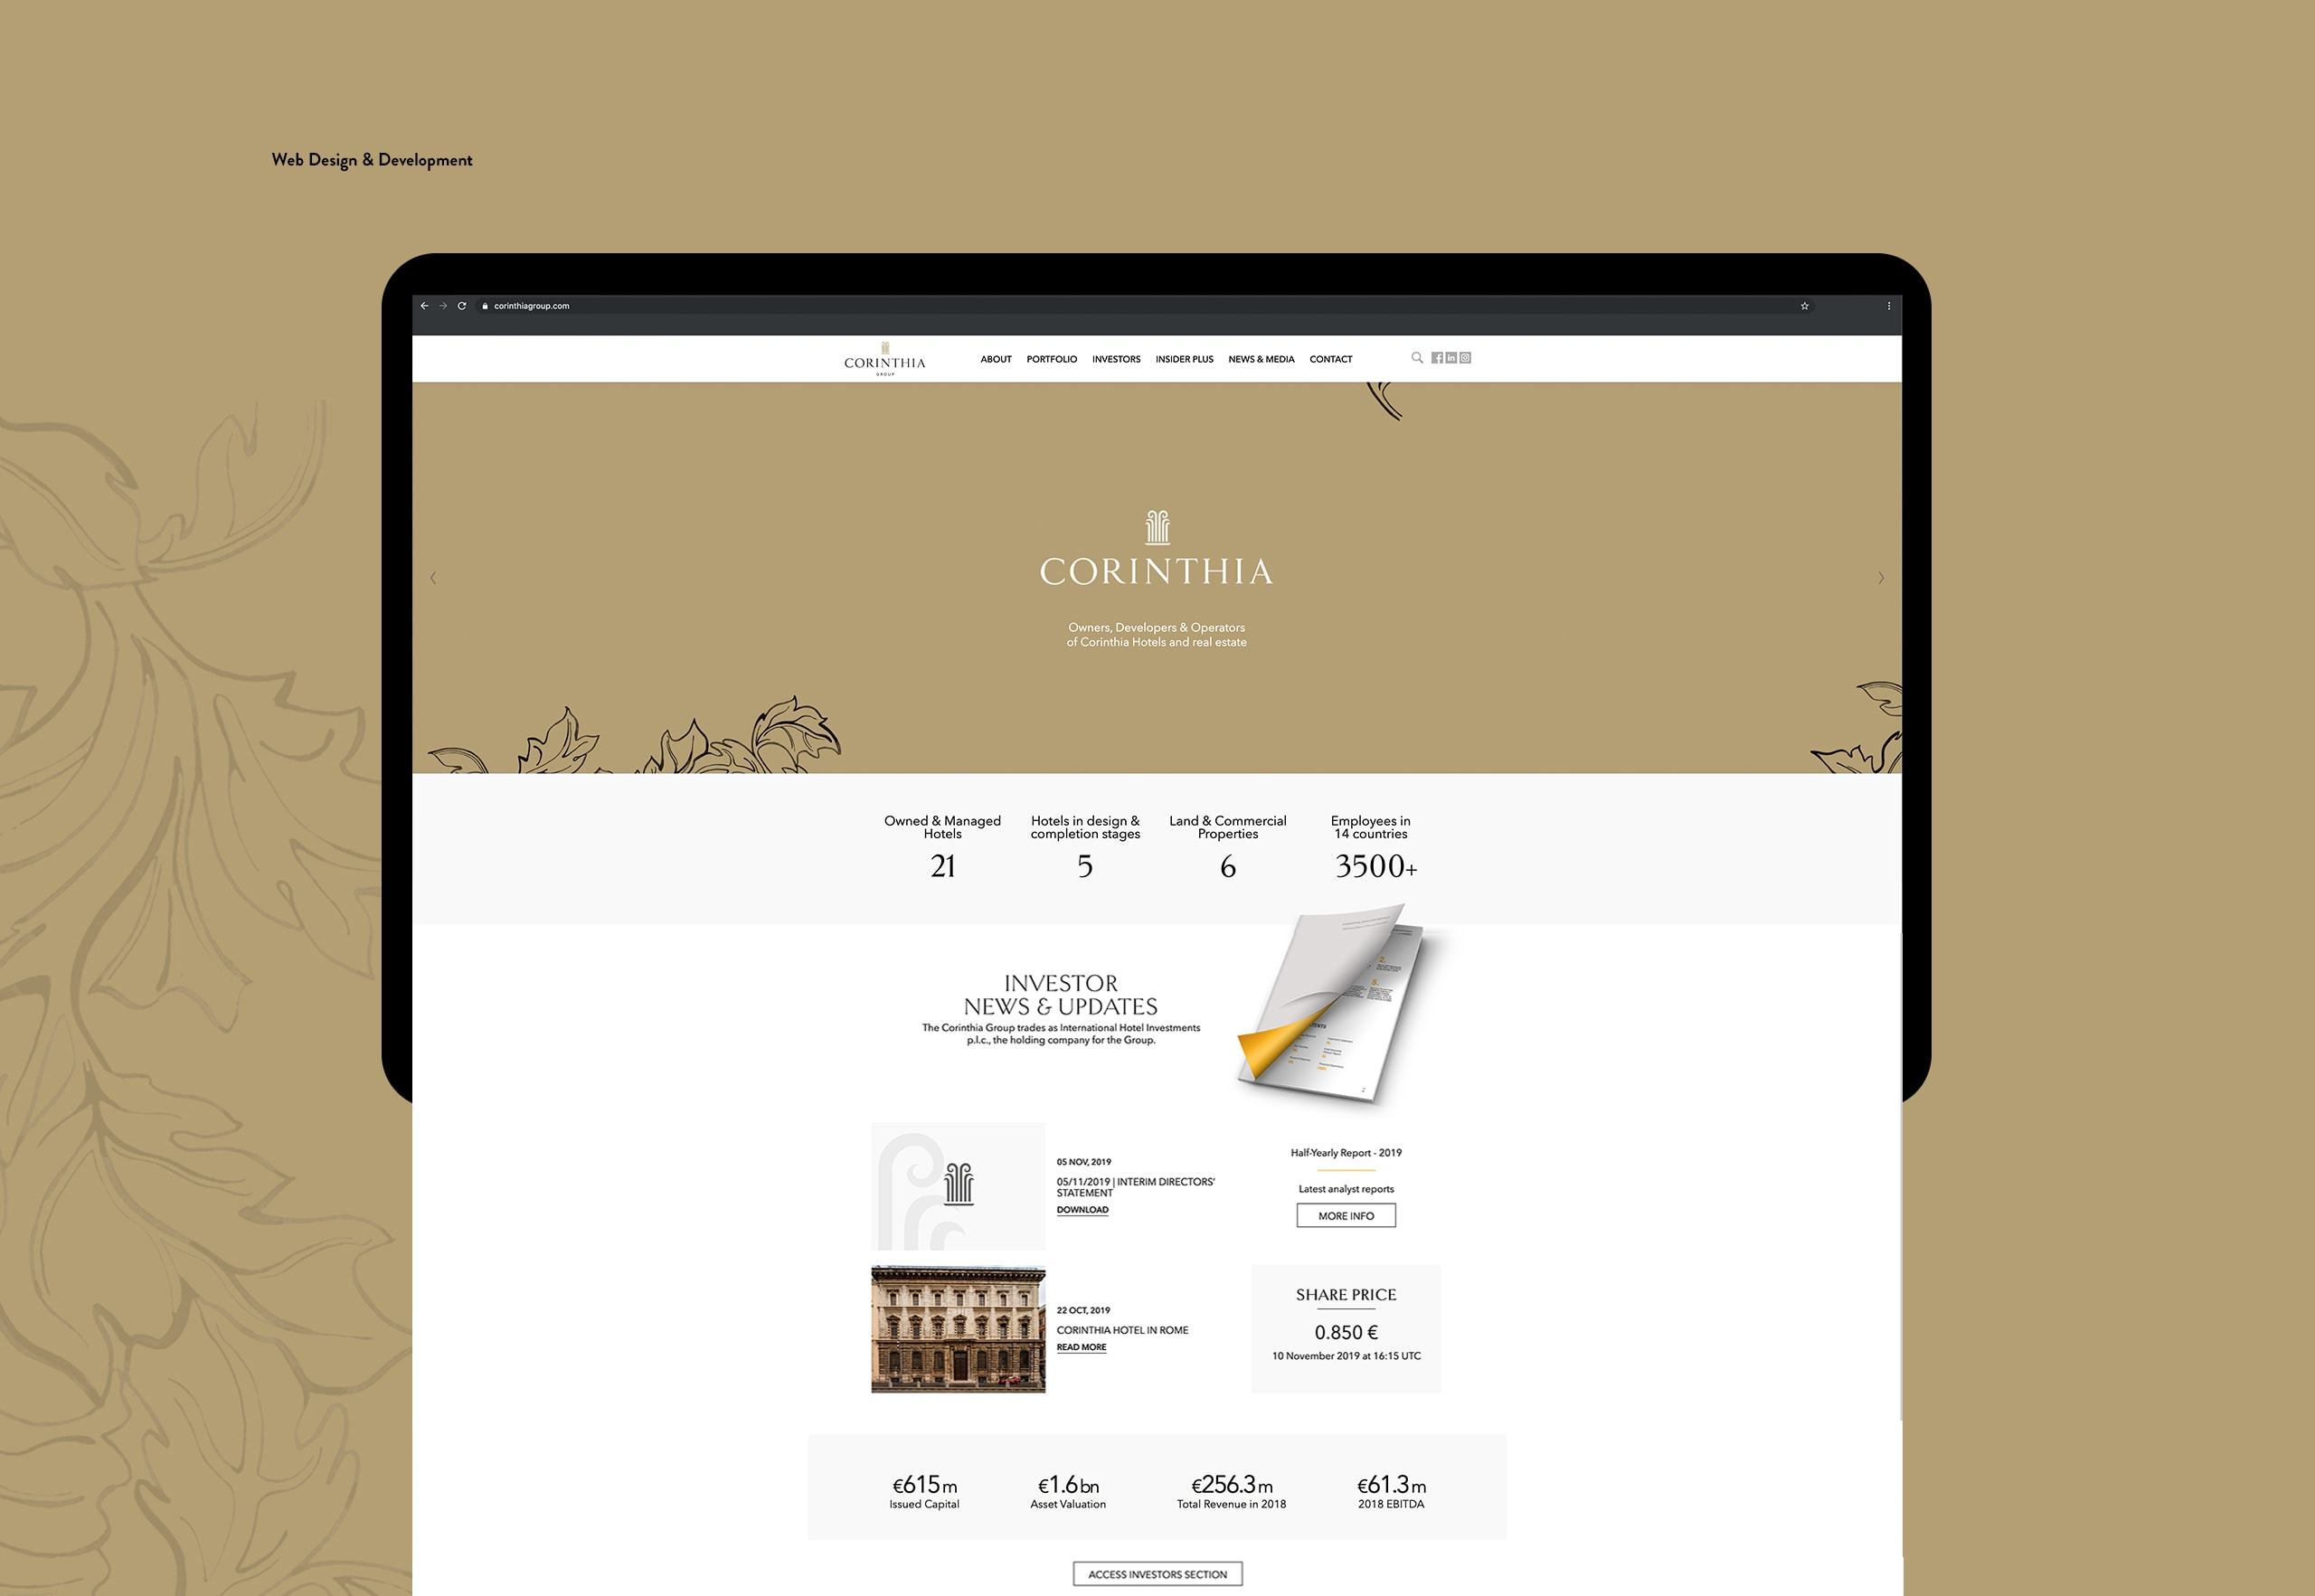 Corinthia Group – A Portfolio Website for Investors image